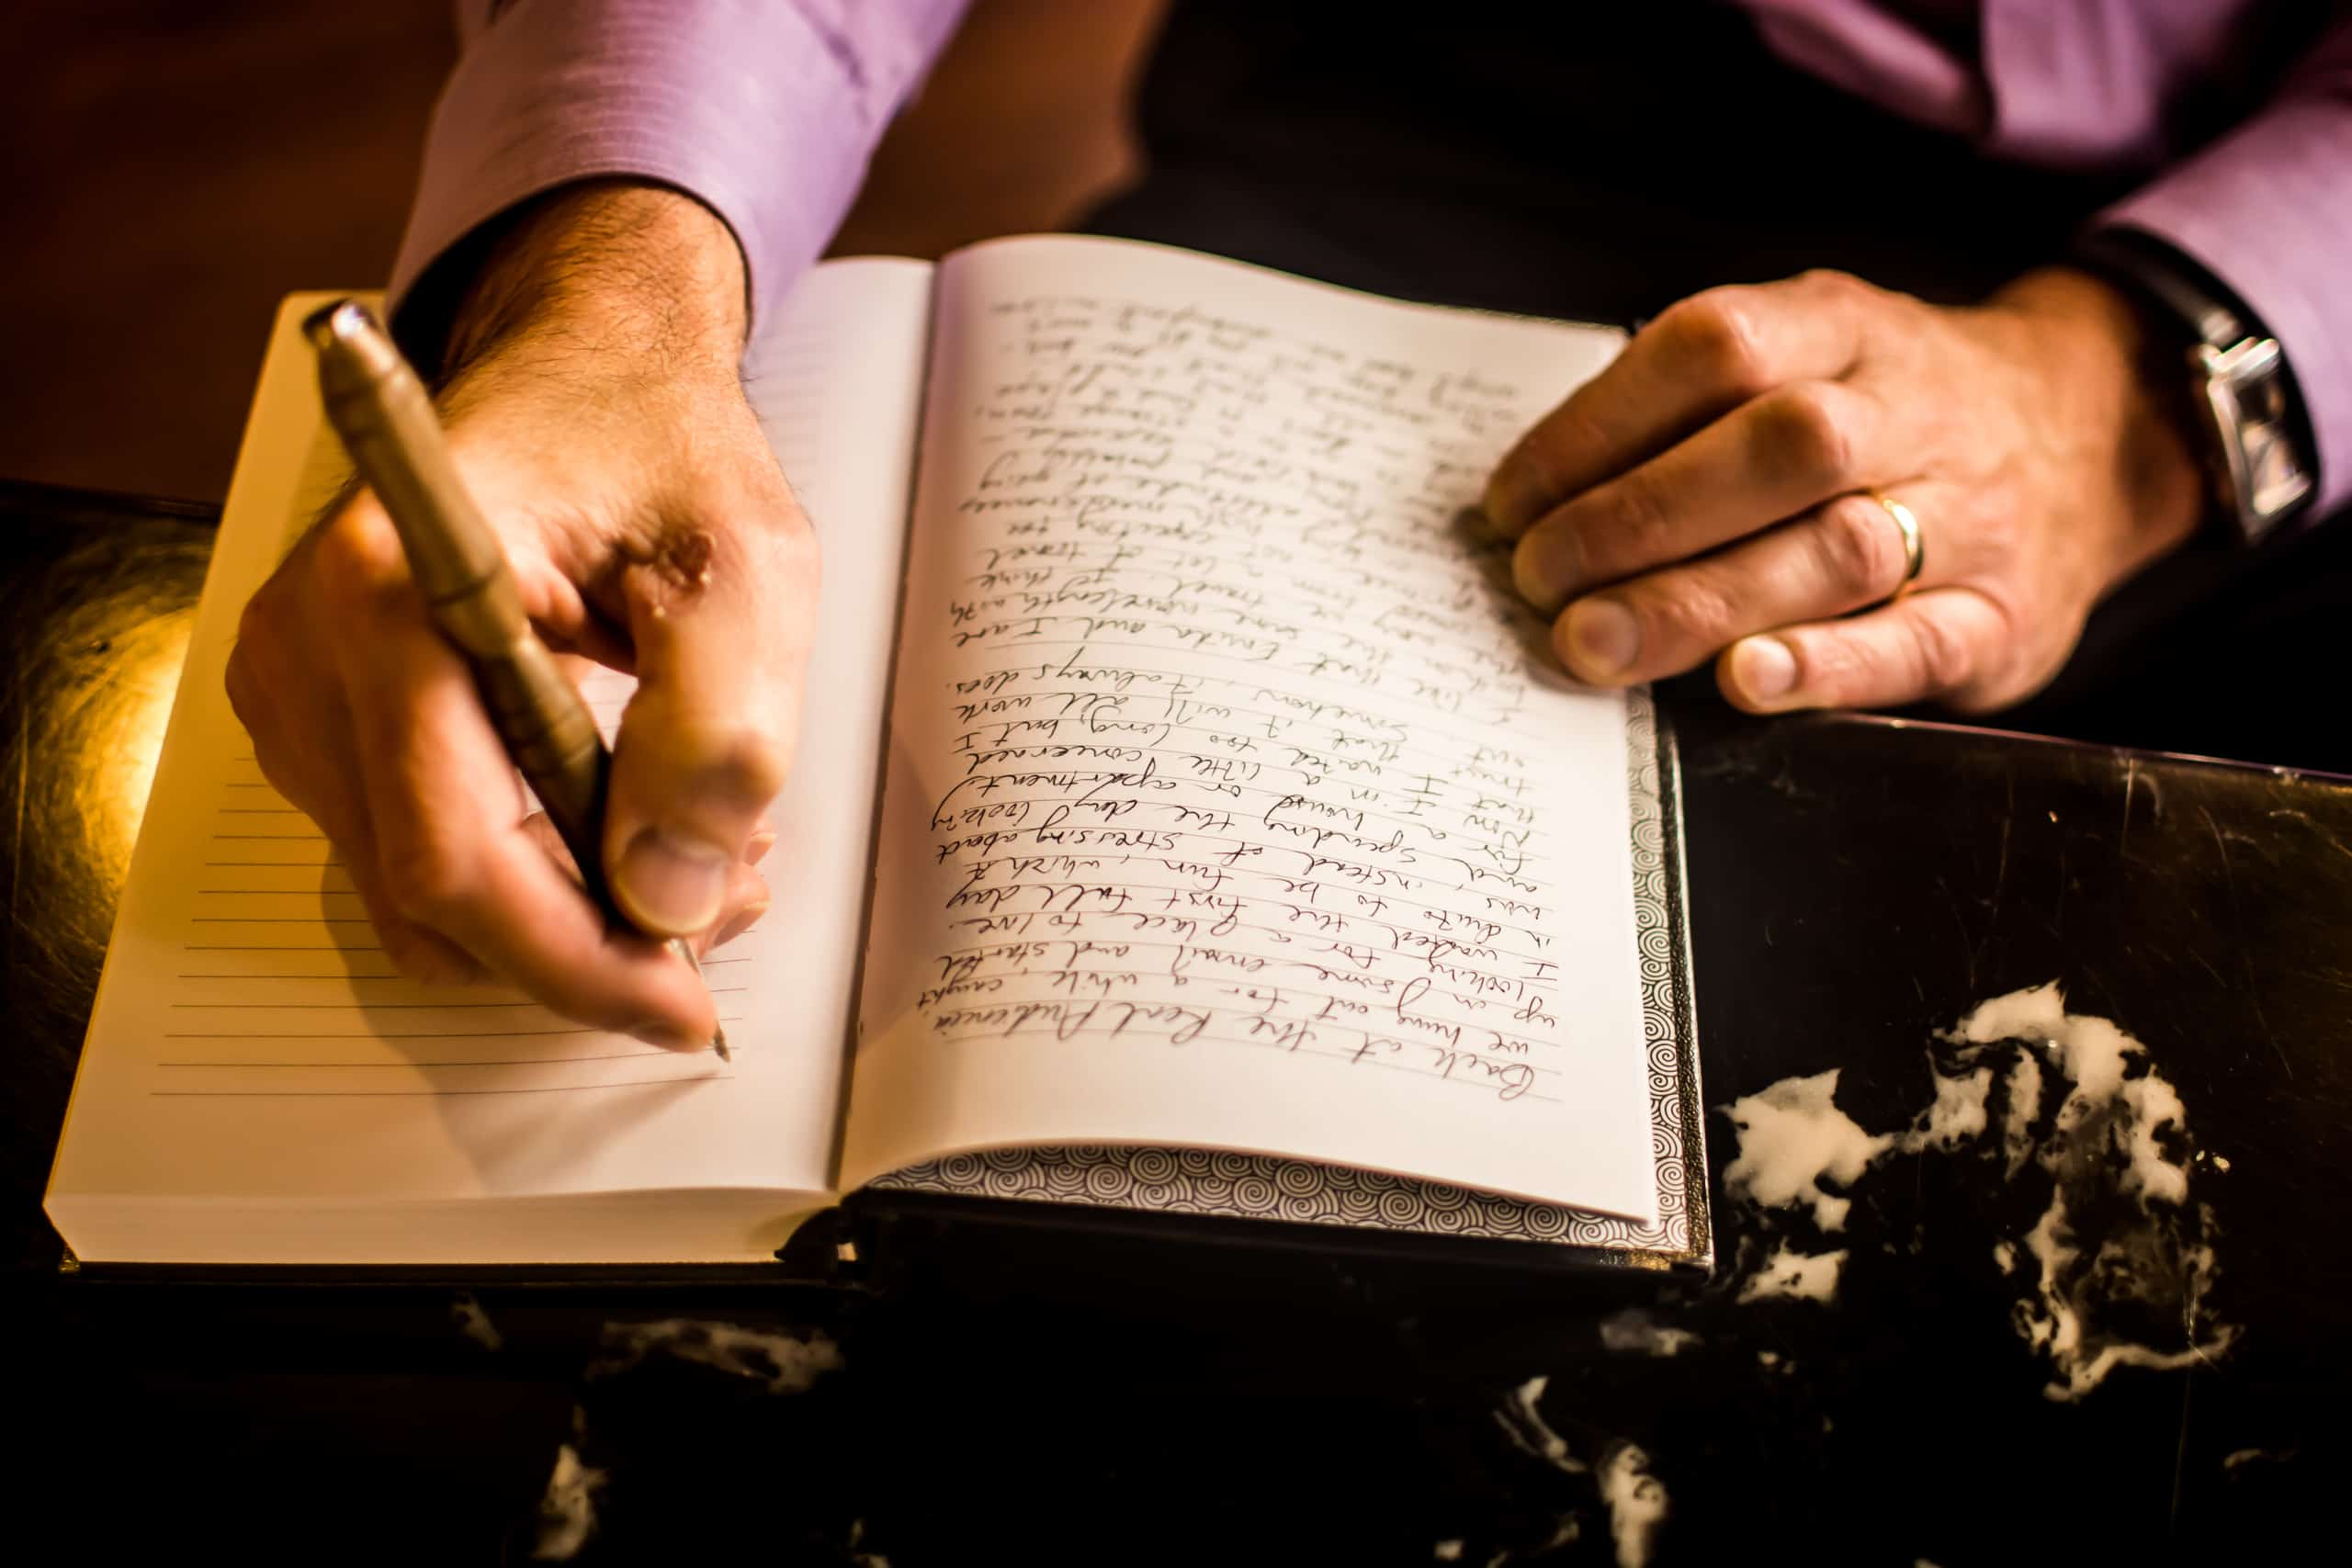 A person using a calligraphy pen to write in cursive in a book